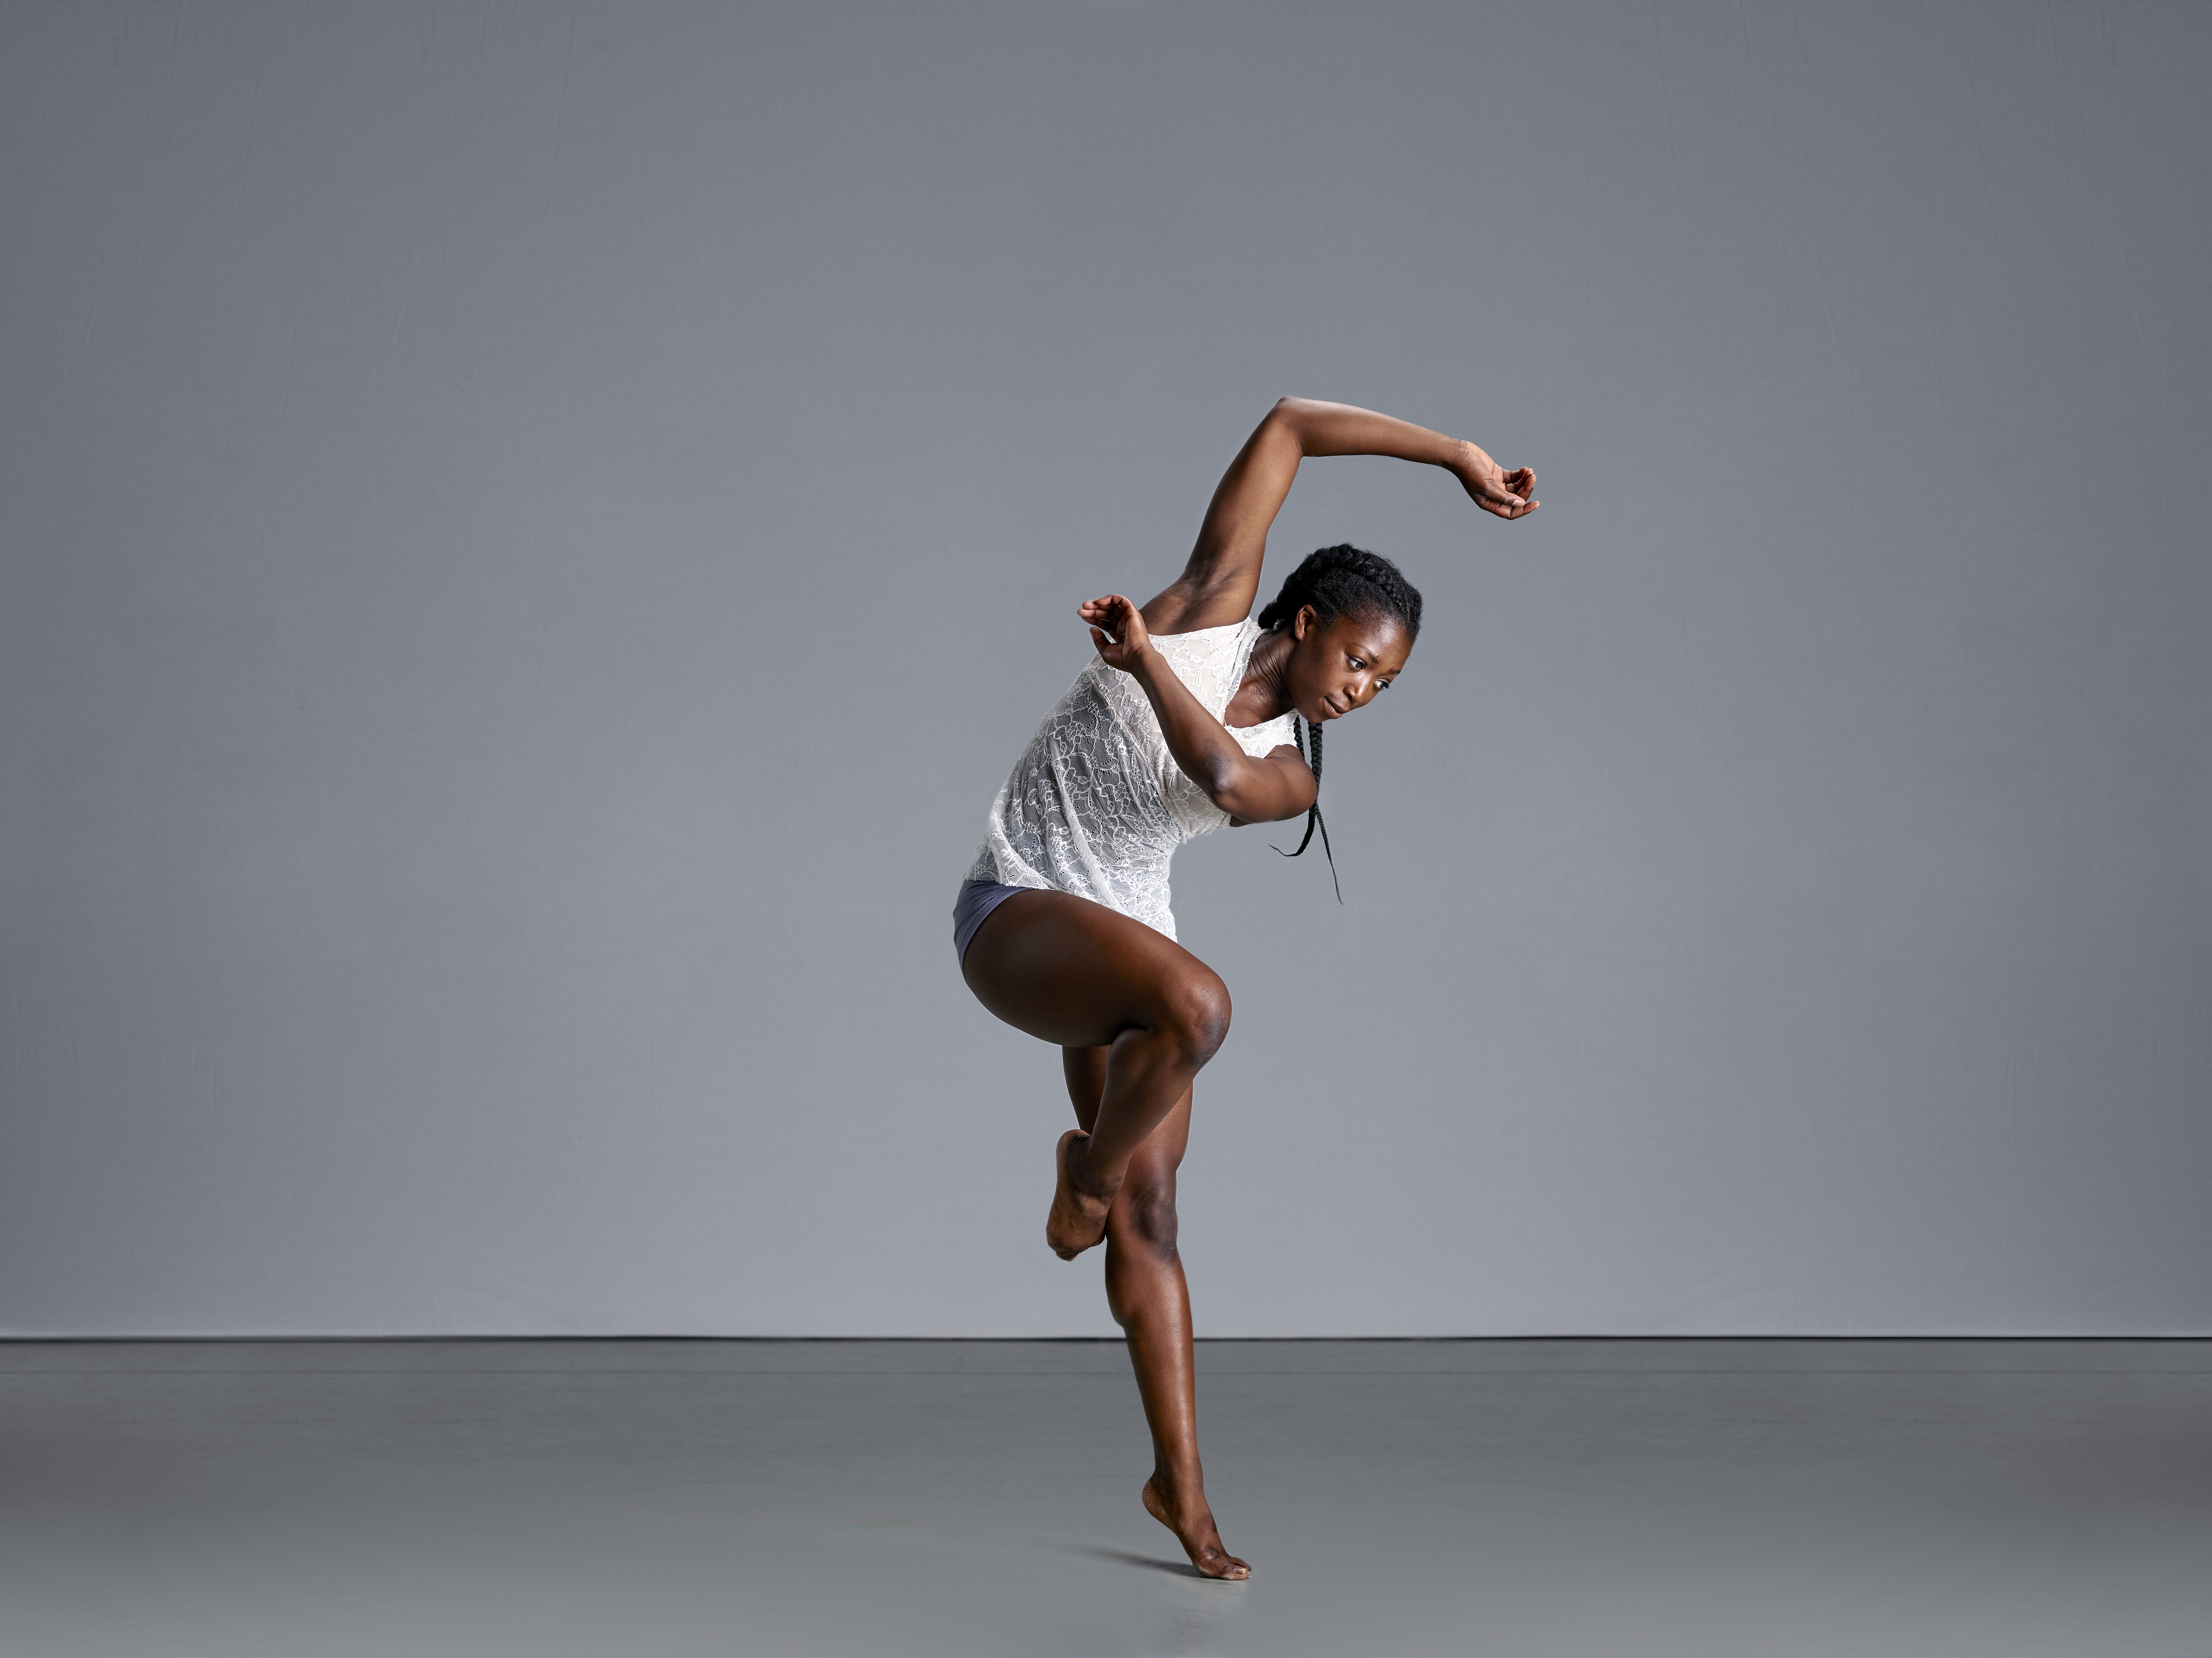 Dancer picture pics 77